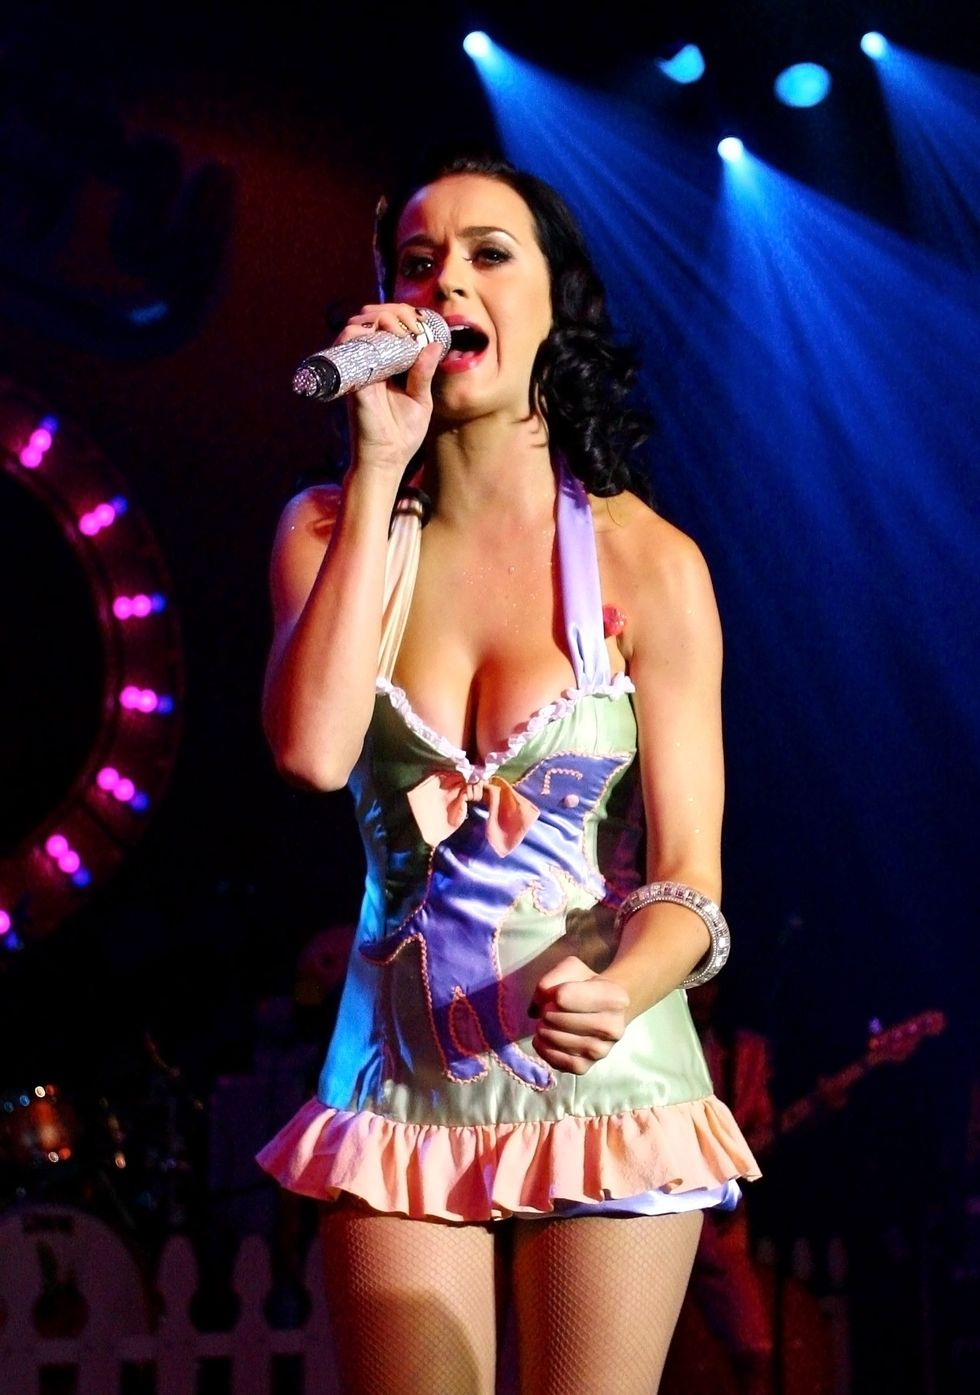 katy-perry-performs-at-the-tivoli-in-brisbane-01